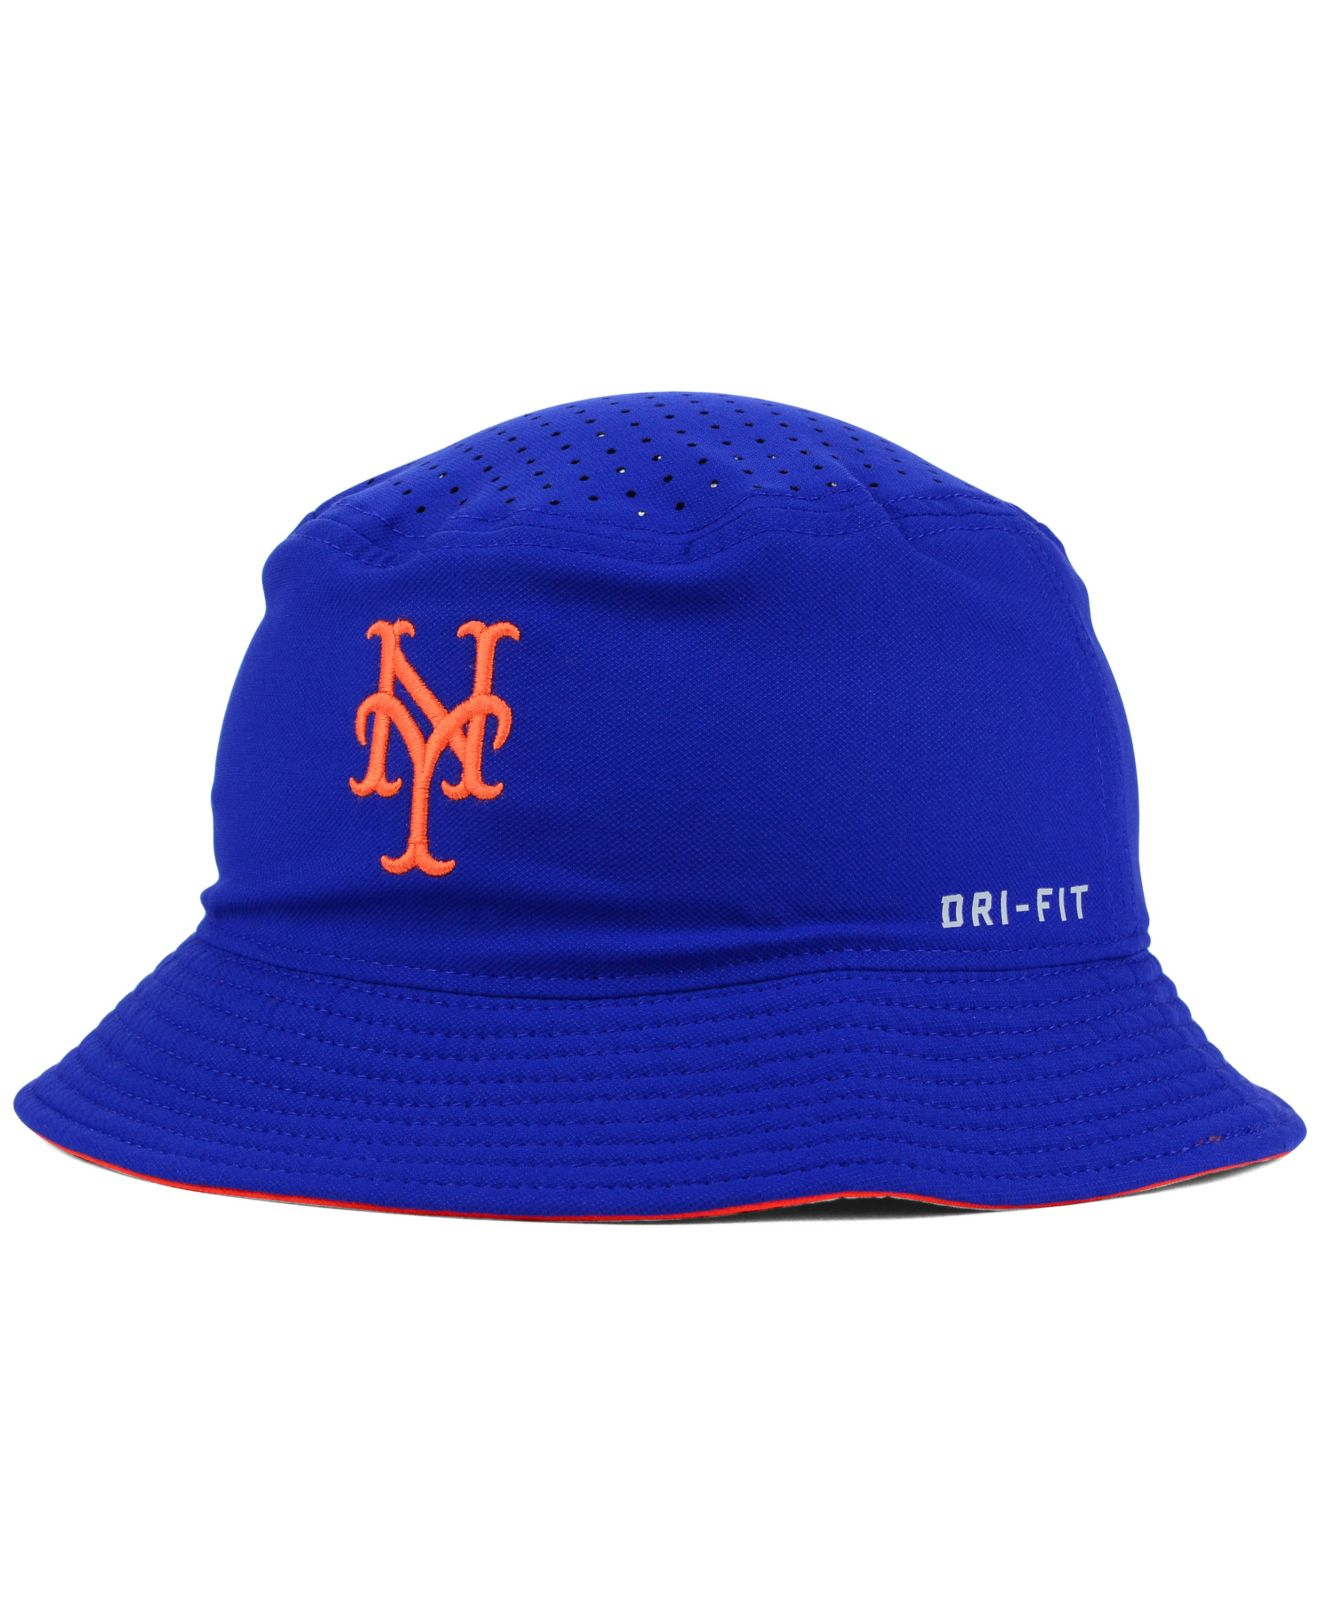 ffc9c4b2de838 Nike New York Mets Vapor Dri-Fit Bucket Hat in Blue for Men - Lyst